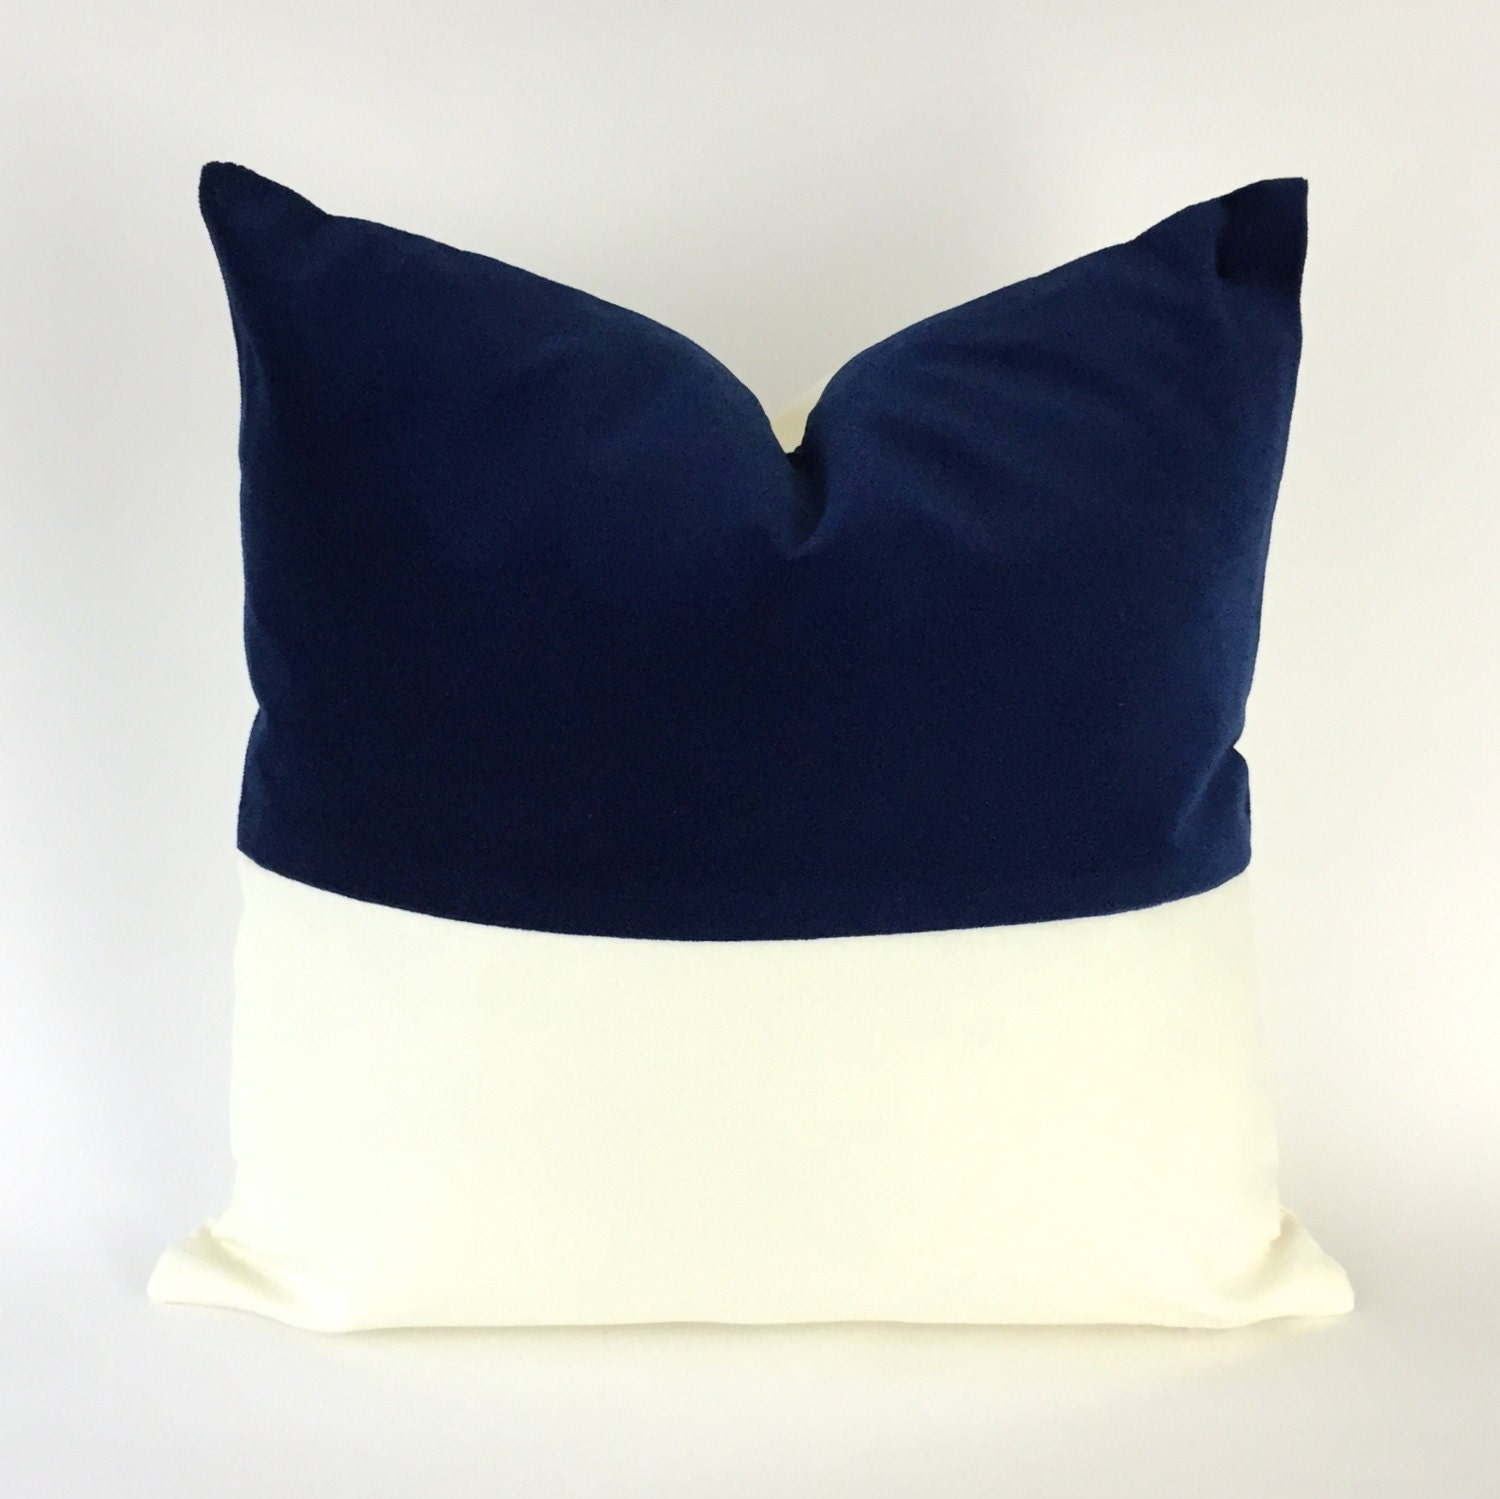 Throw Pillow Invisible Zipper : Colorblock Velvet and White Canvas Decorative Throw Pillow Cover- Invisible Zipper Closure